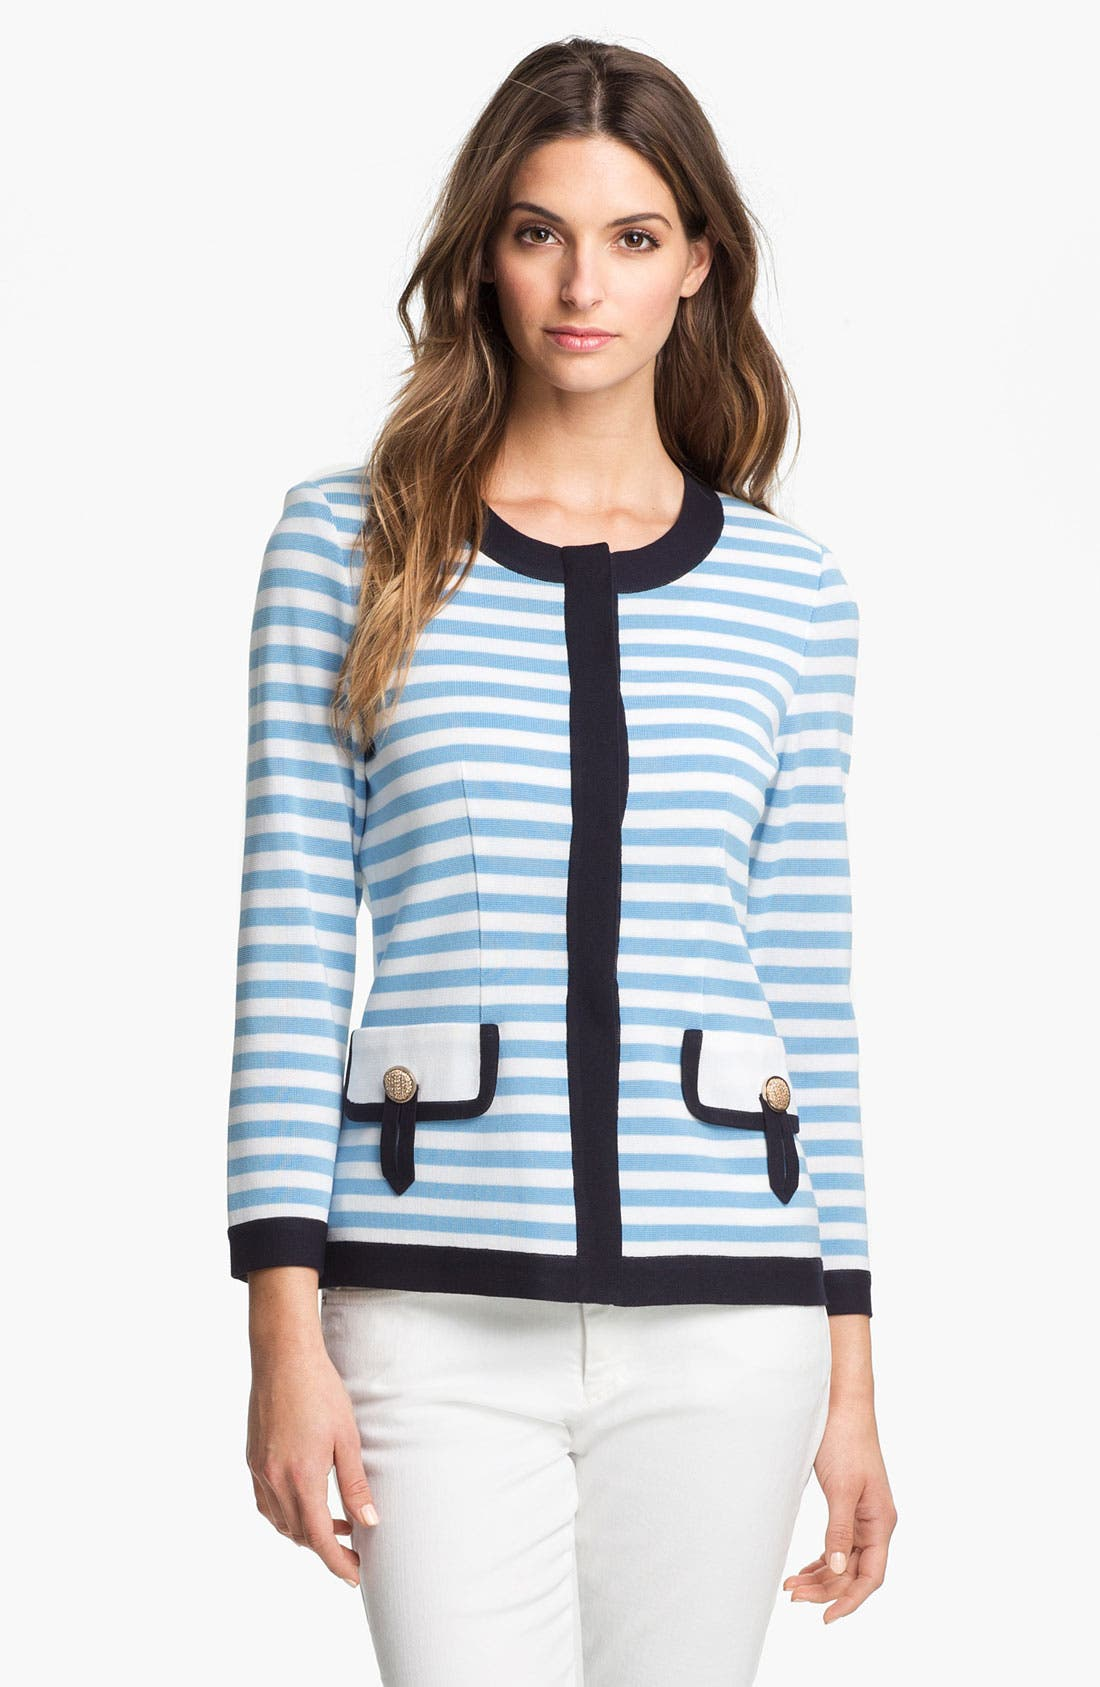 Main Image - Exclusively Misook 'Rebecca' Stripe Jacket (Petite) (Online Exclusive)